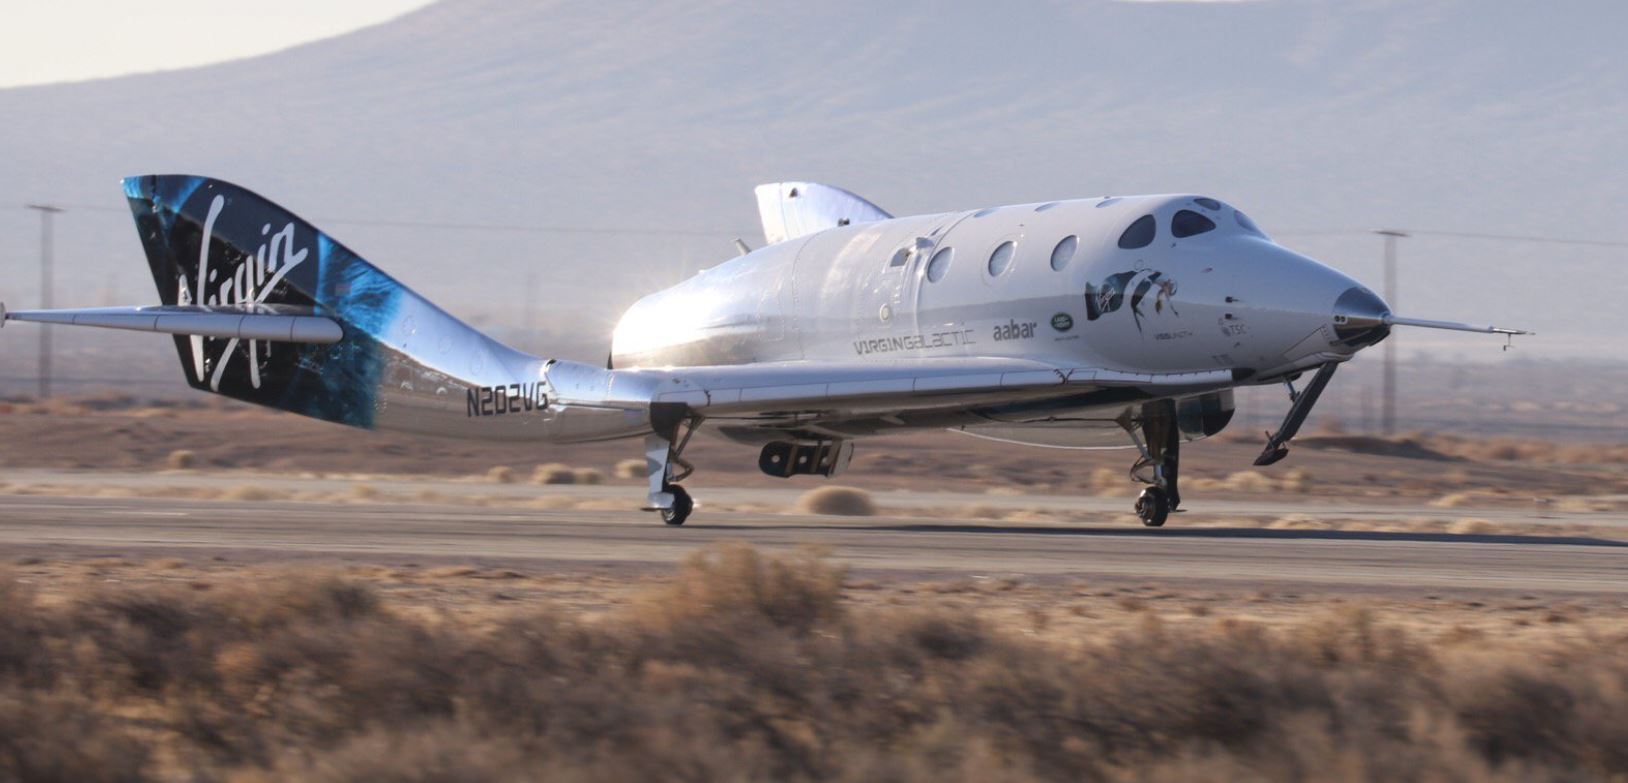 USS Unity returns from space. | Credit: Virgin Galactic